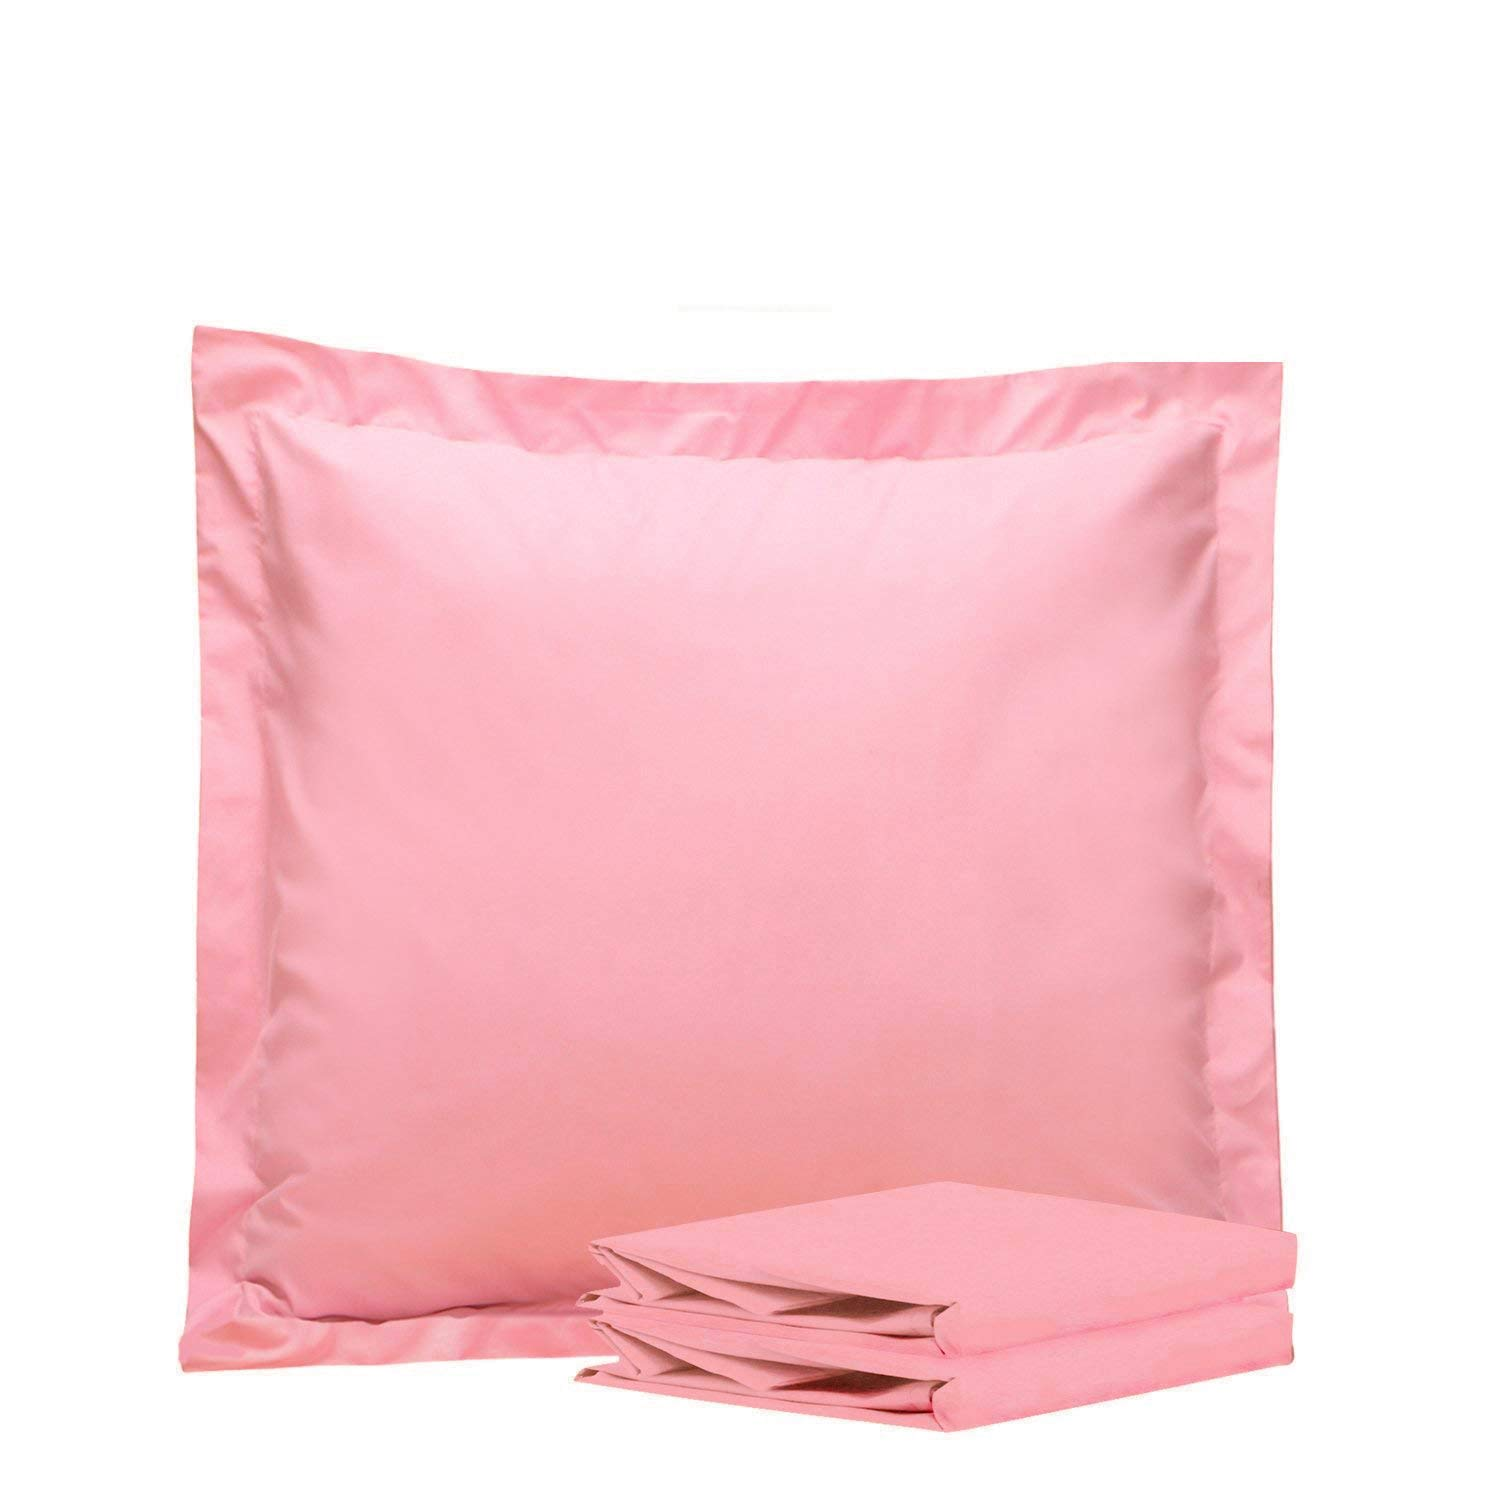 NTBAY 100% Brushed Microfiber European Square Throw Pillow Cushion Cover Set of 2, Soft and Cozy, Wrinkle, Fade, Stain Resistant (26x 26 inches, Pink)